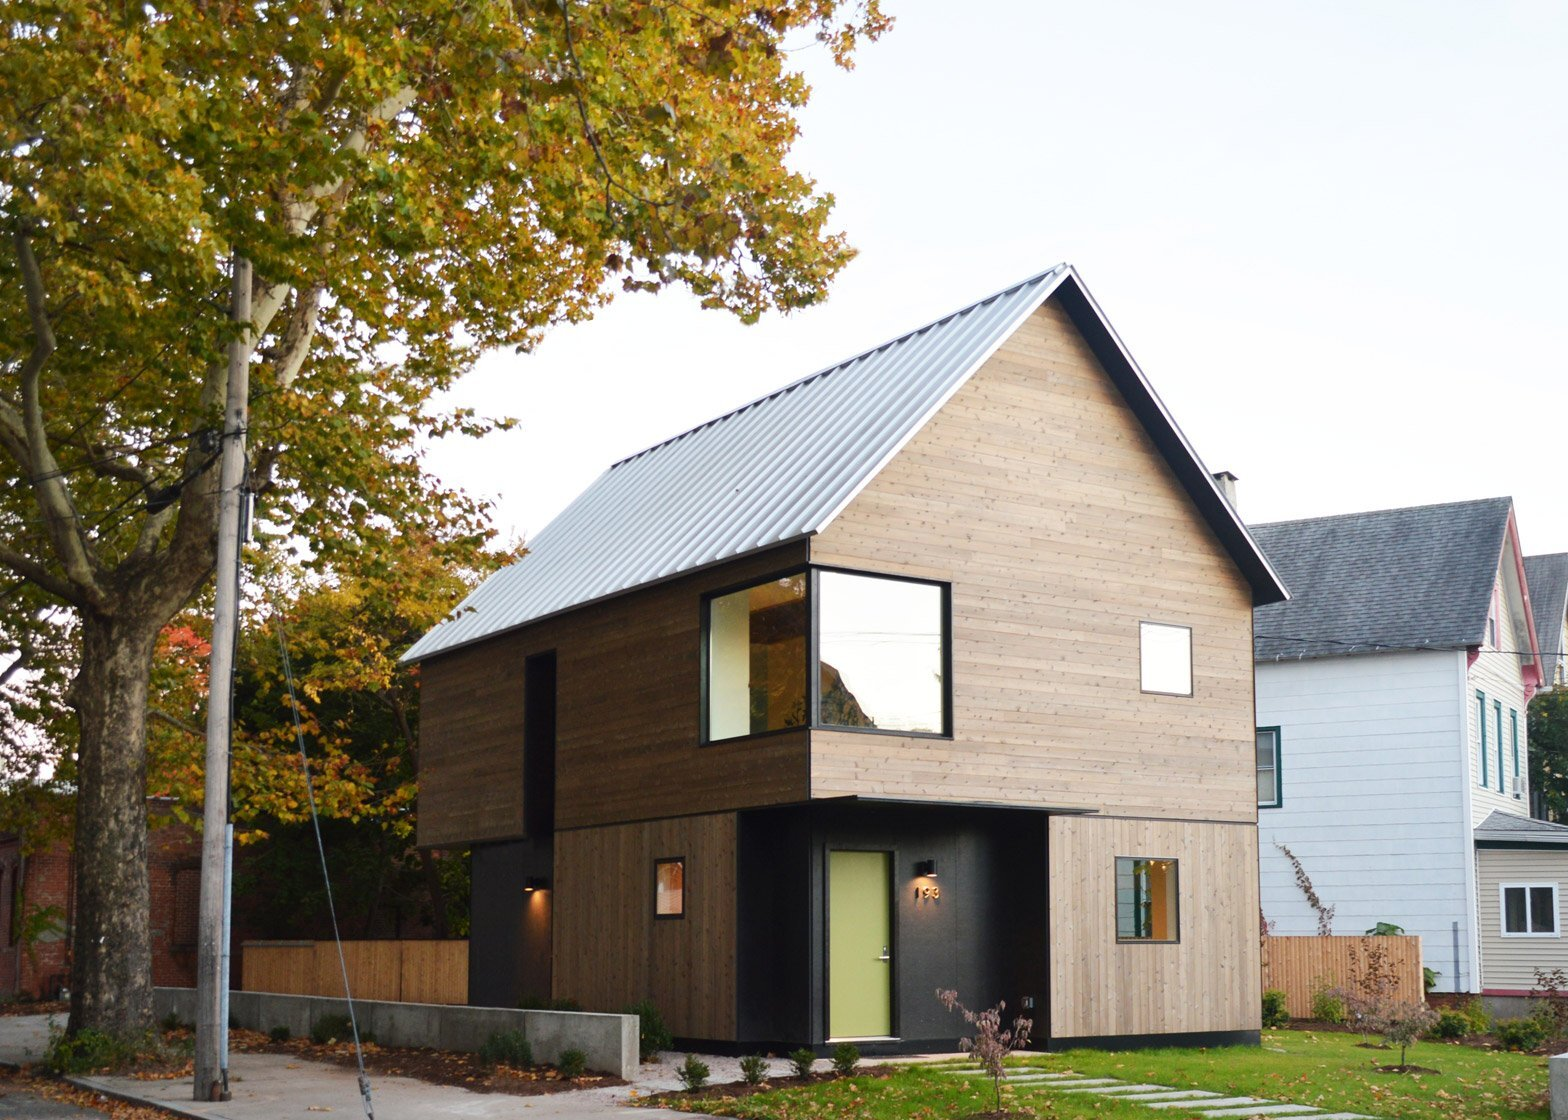 an affordable family home designed built by yale students